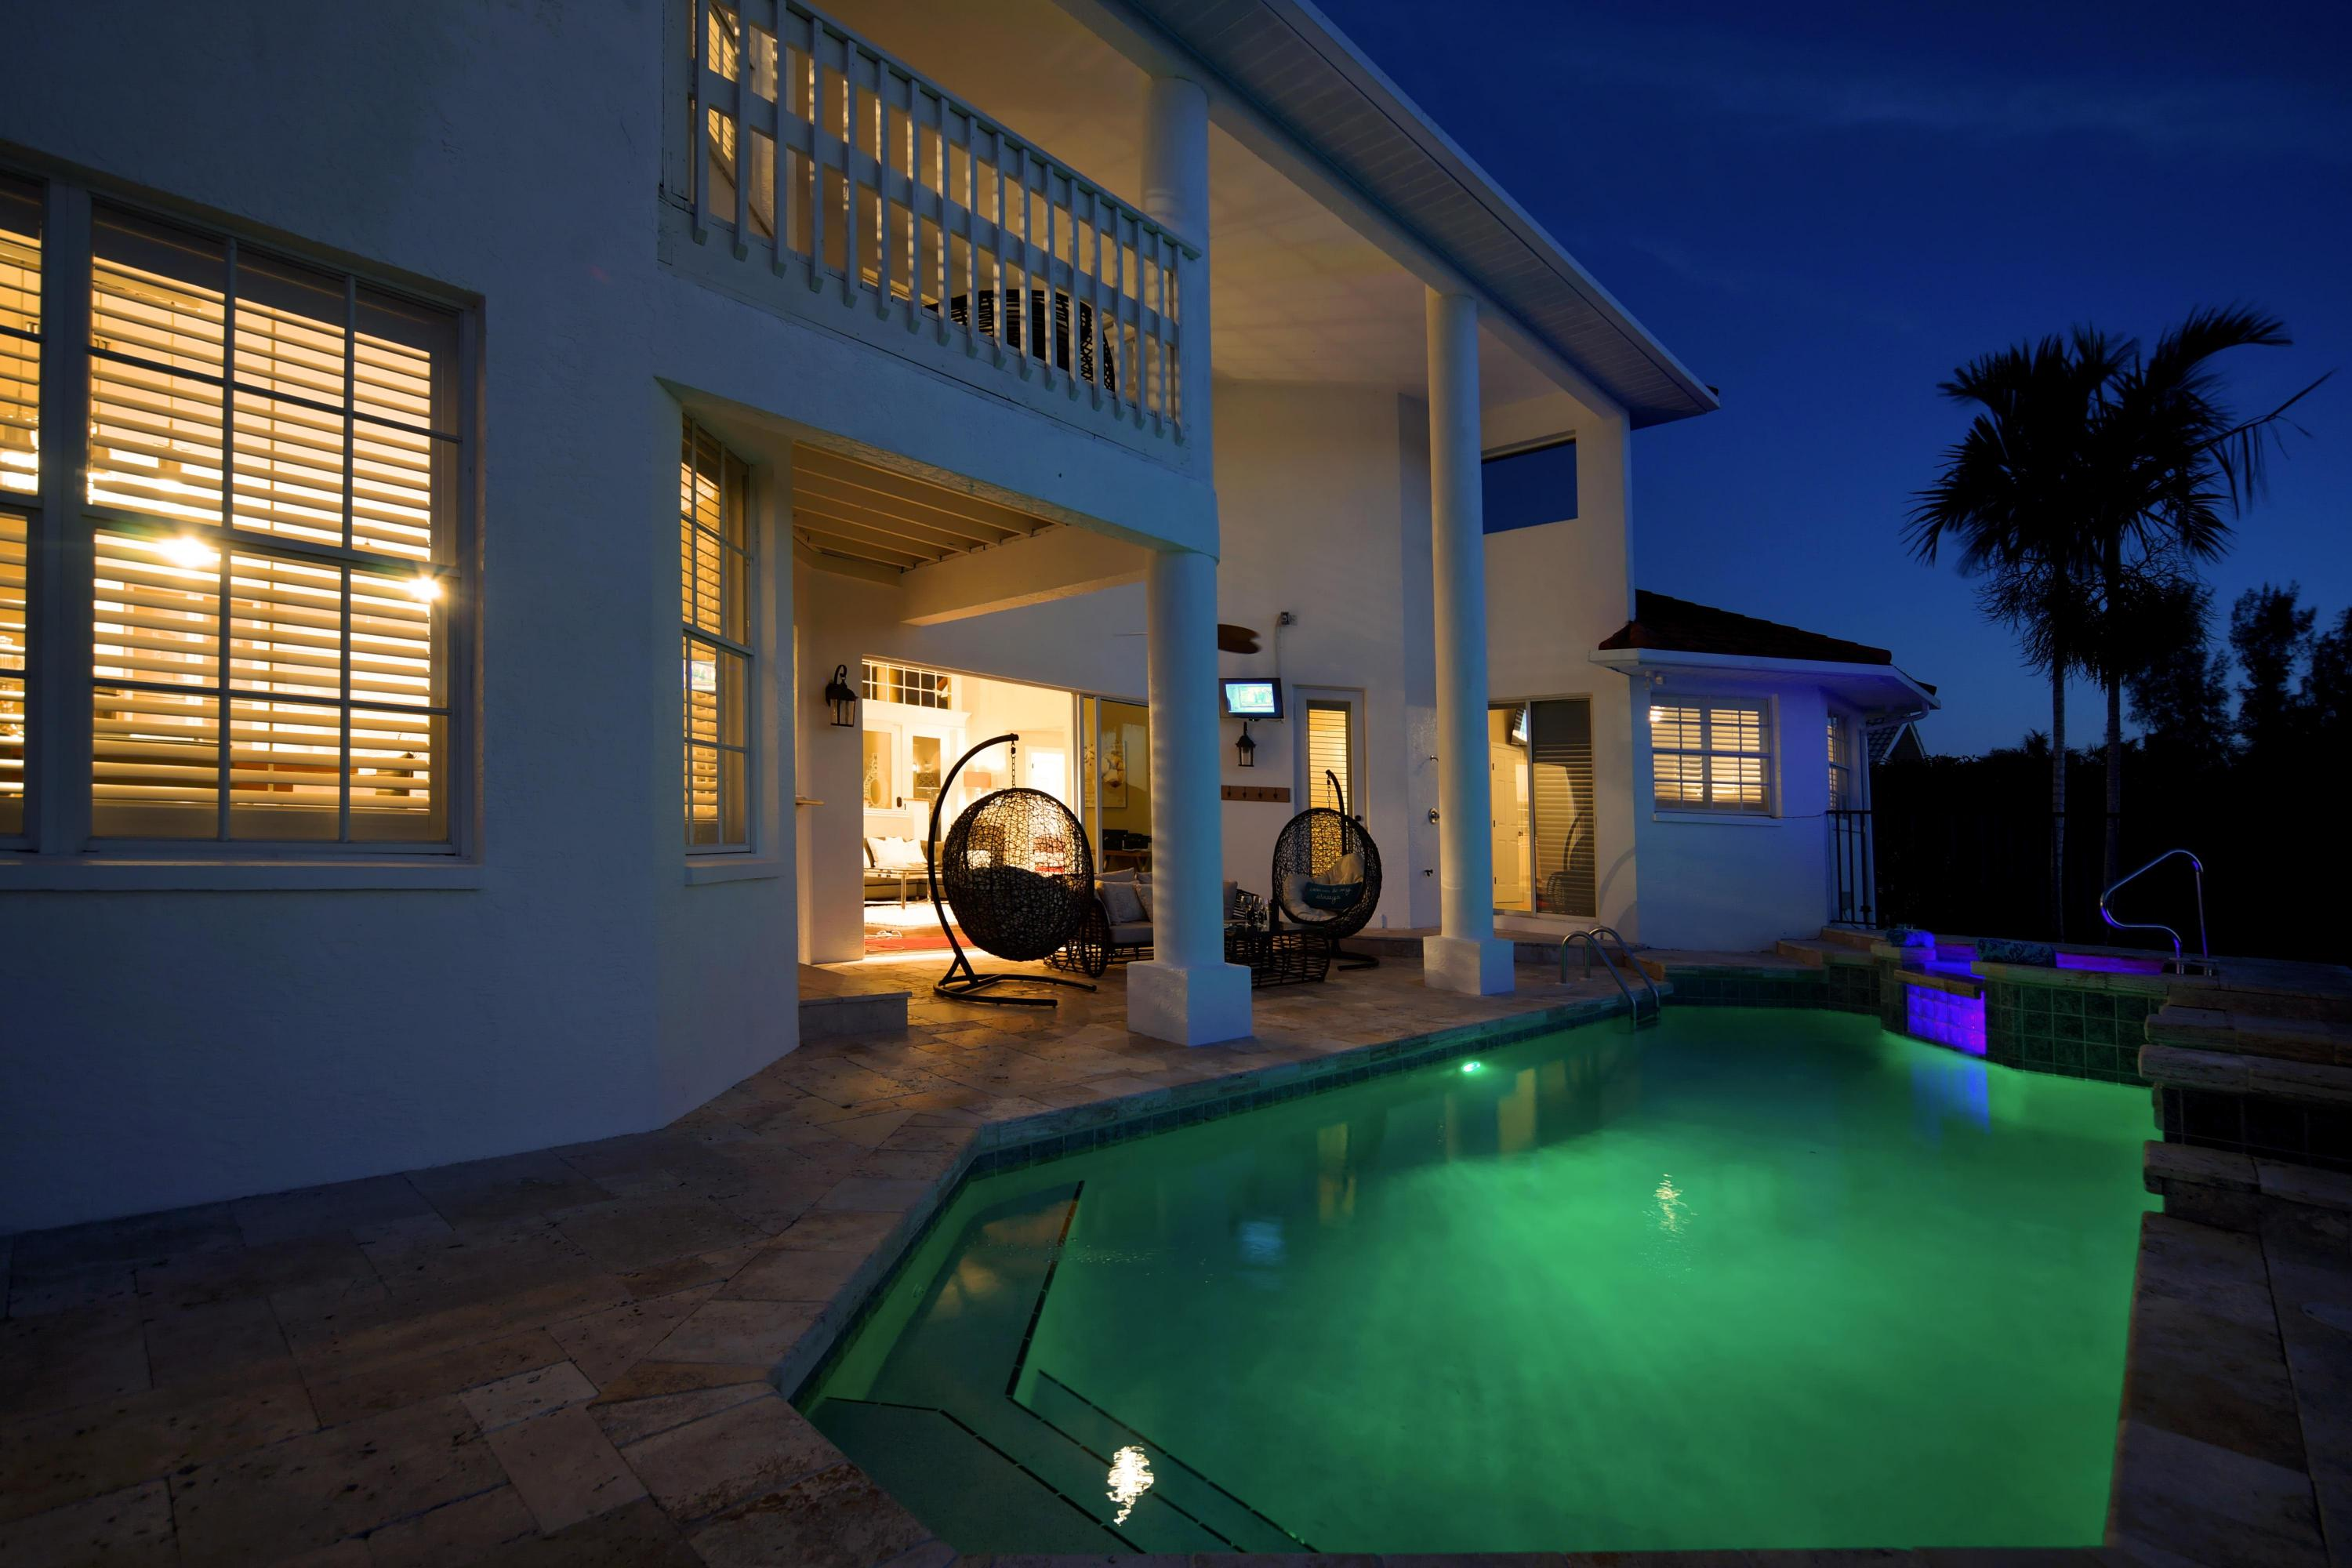 night-pool-in2.jpg